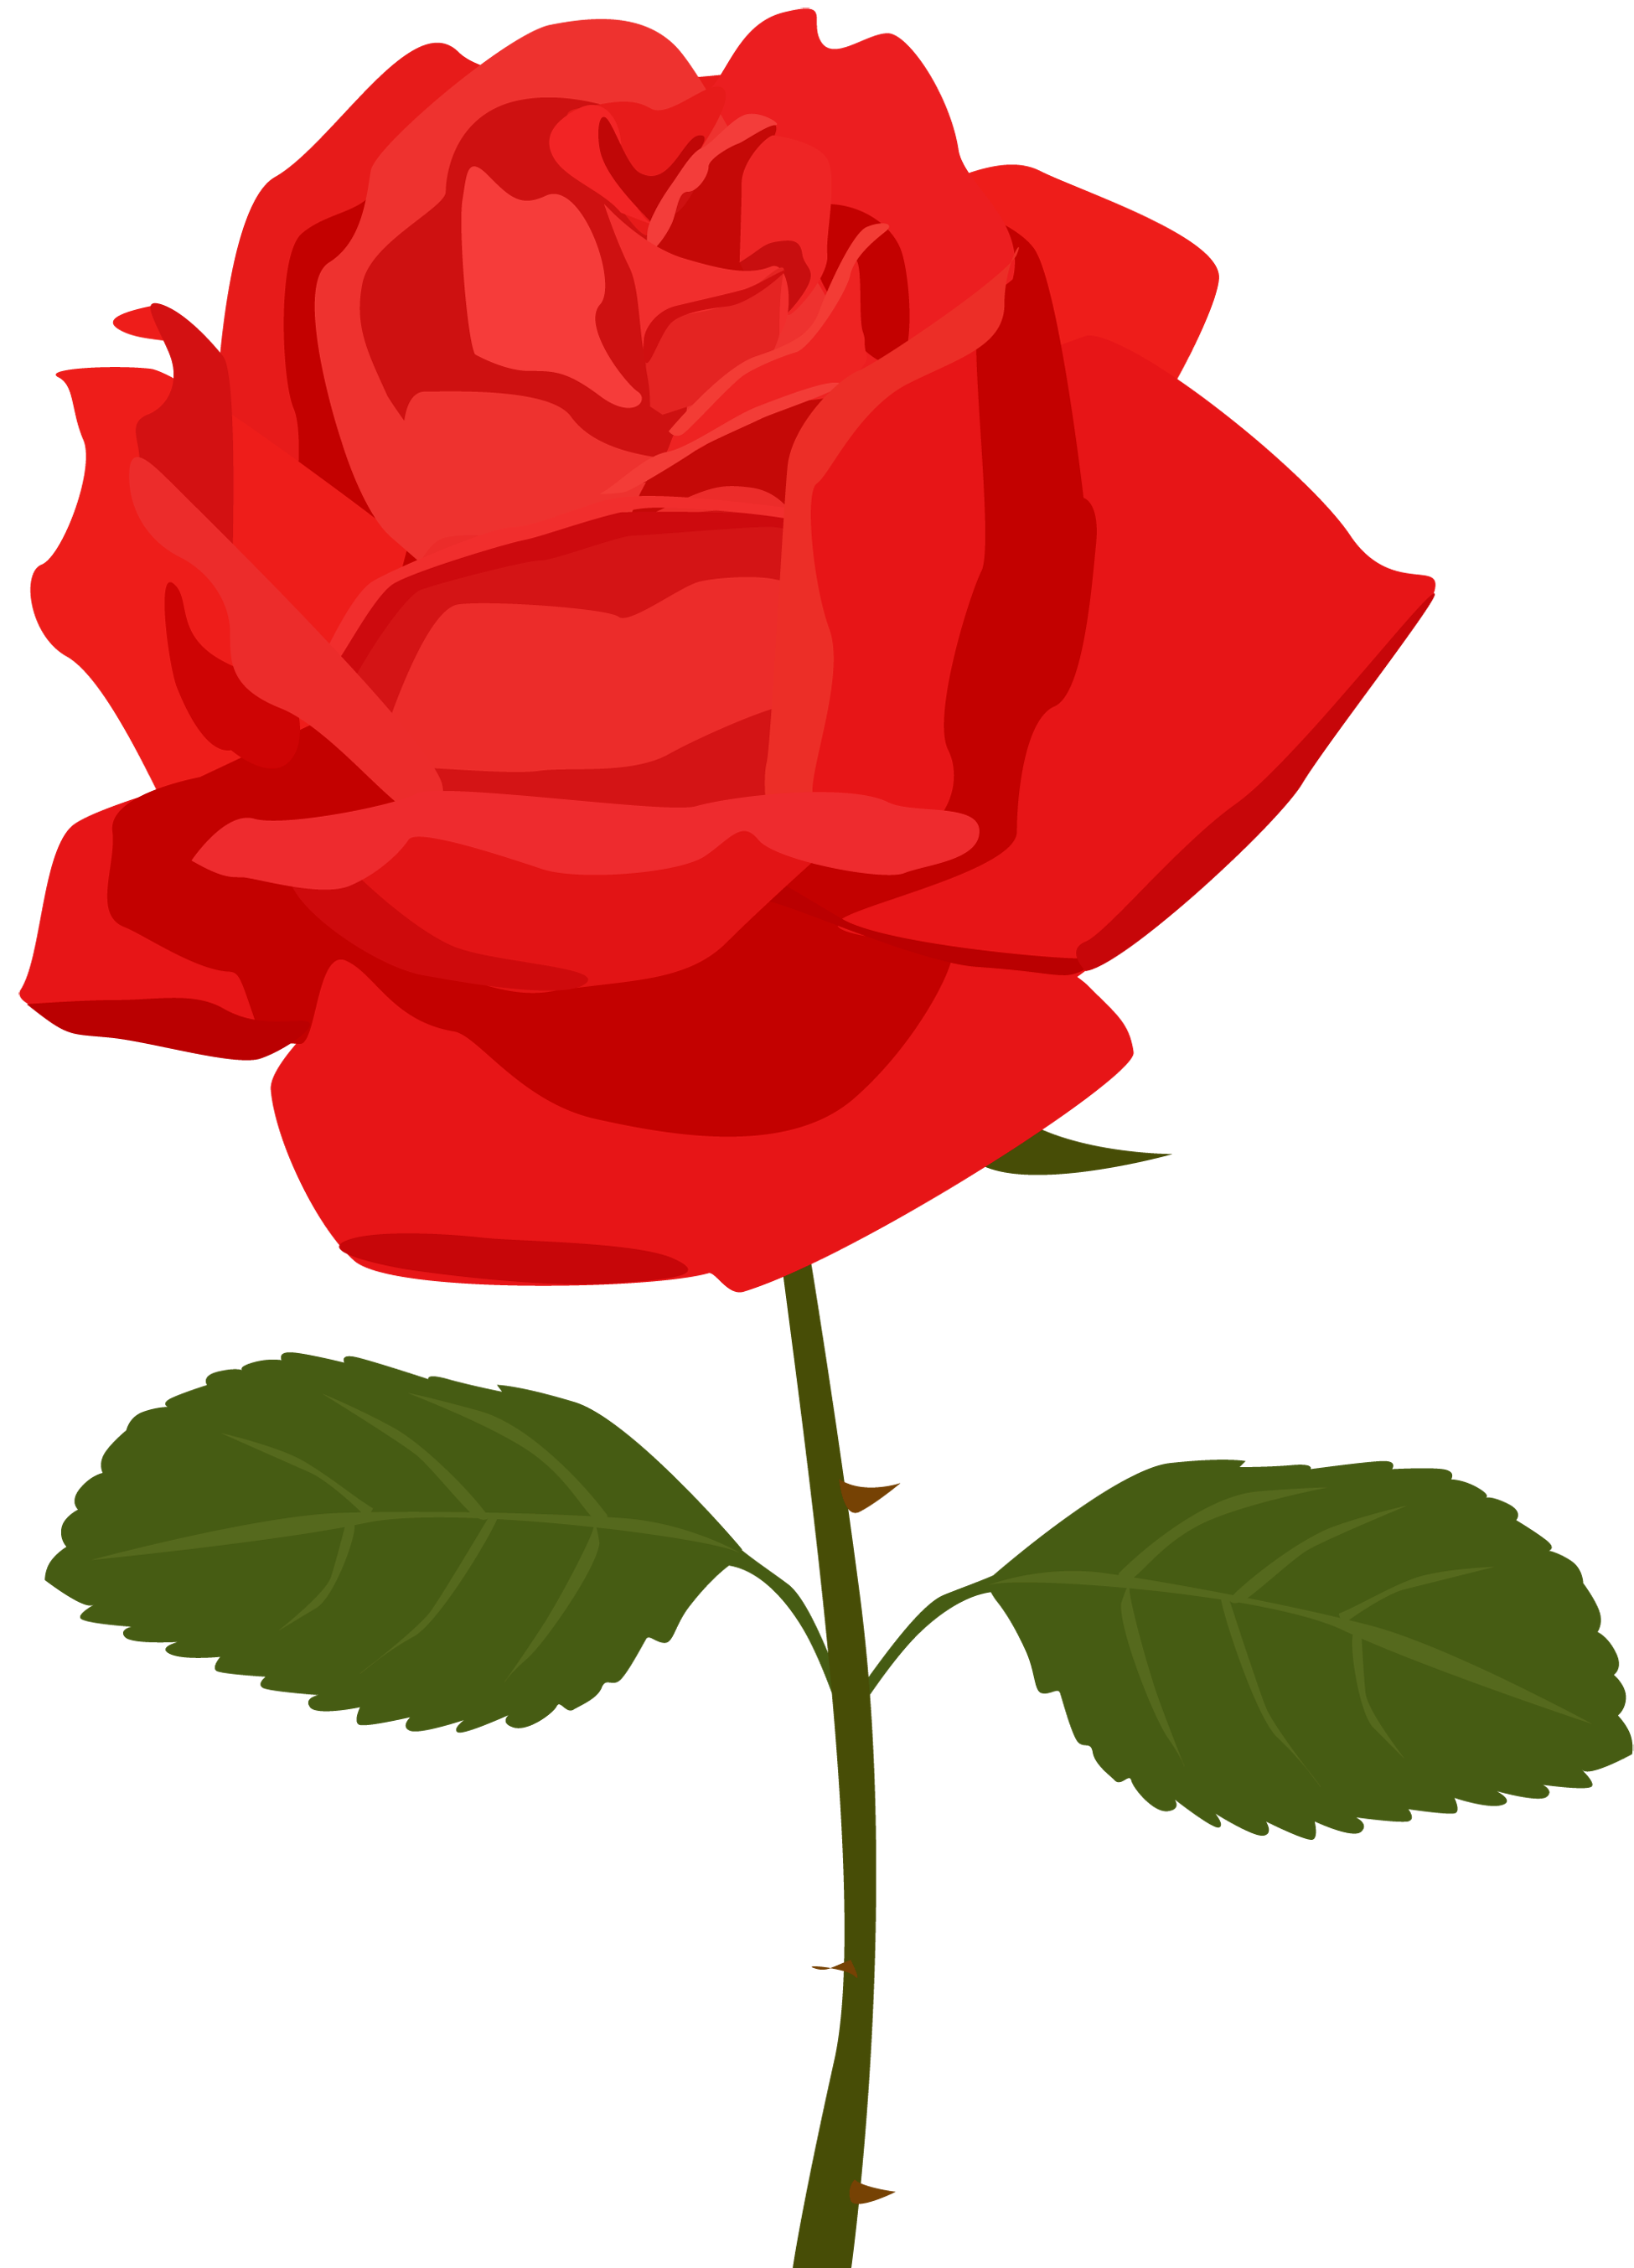 Free Red Roses Clipart, Download Free Clip Art, Free Clip ... clipart